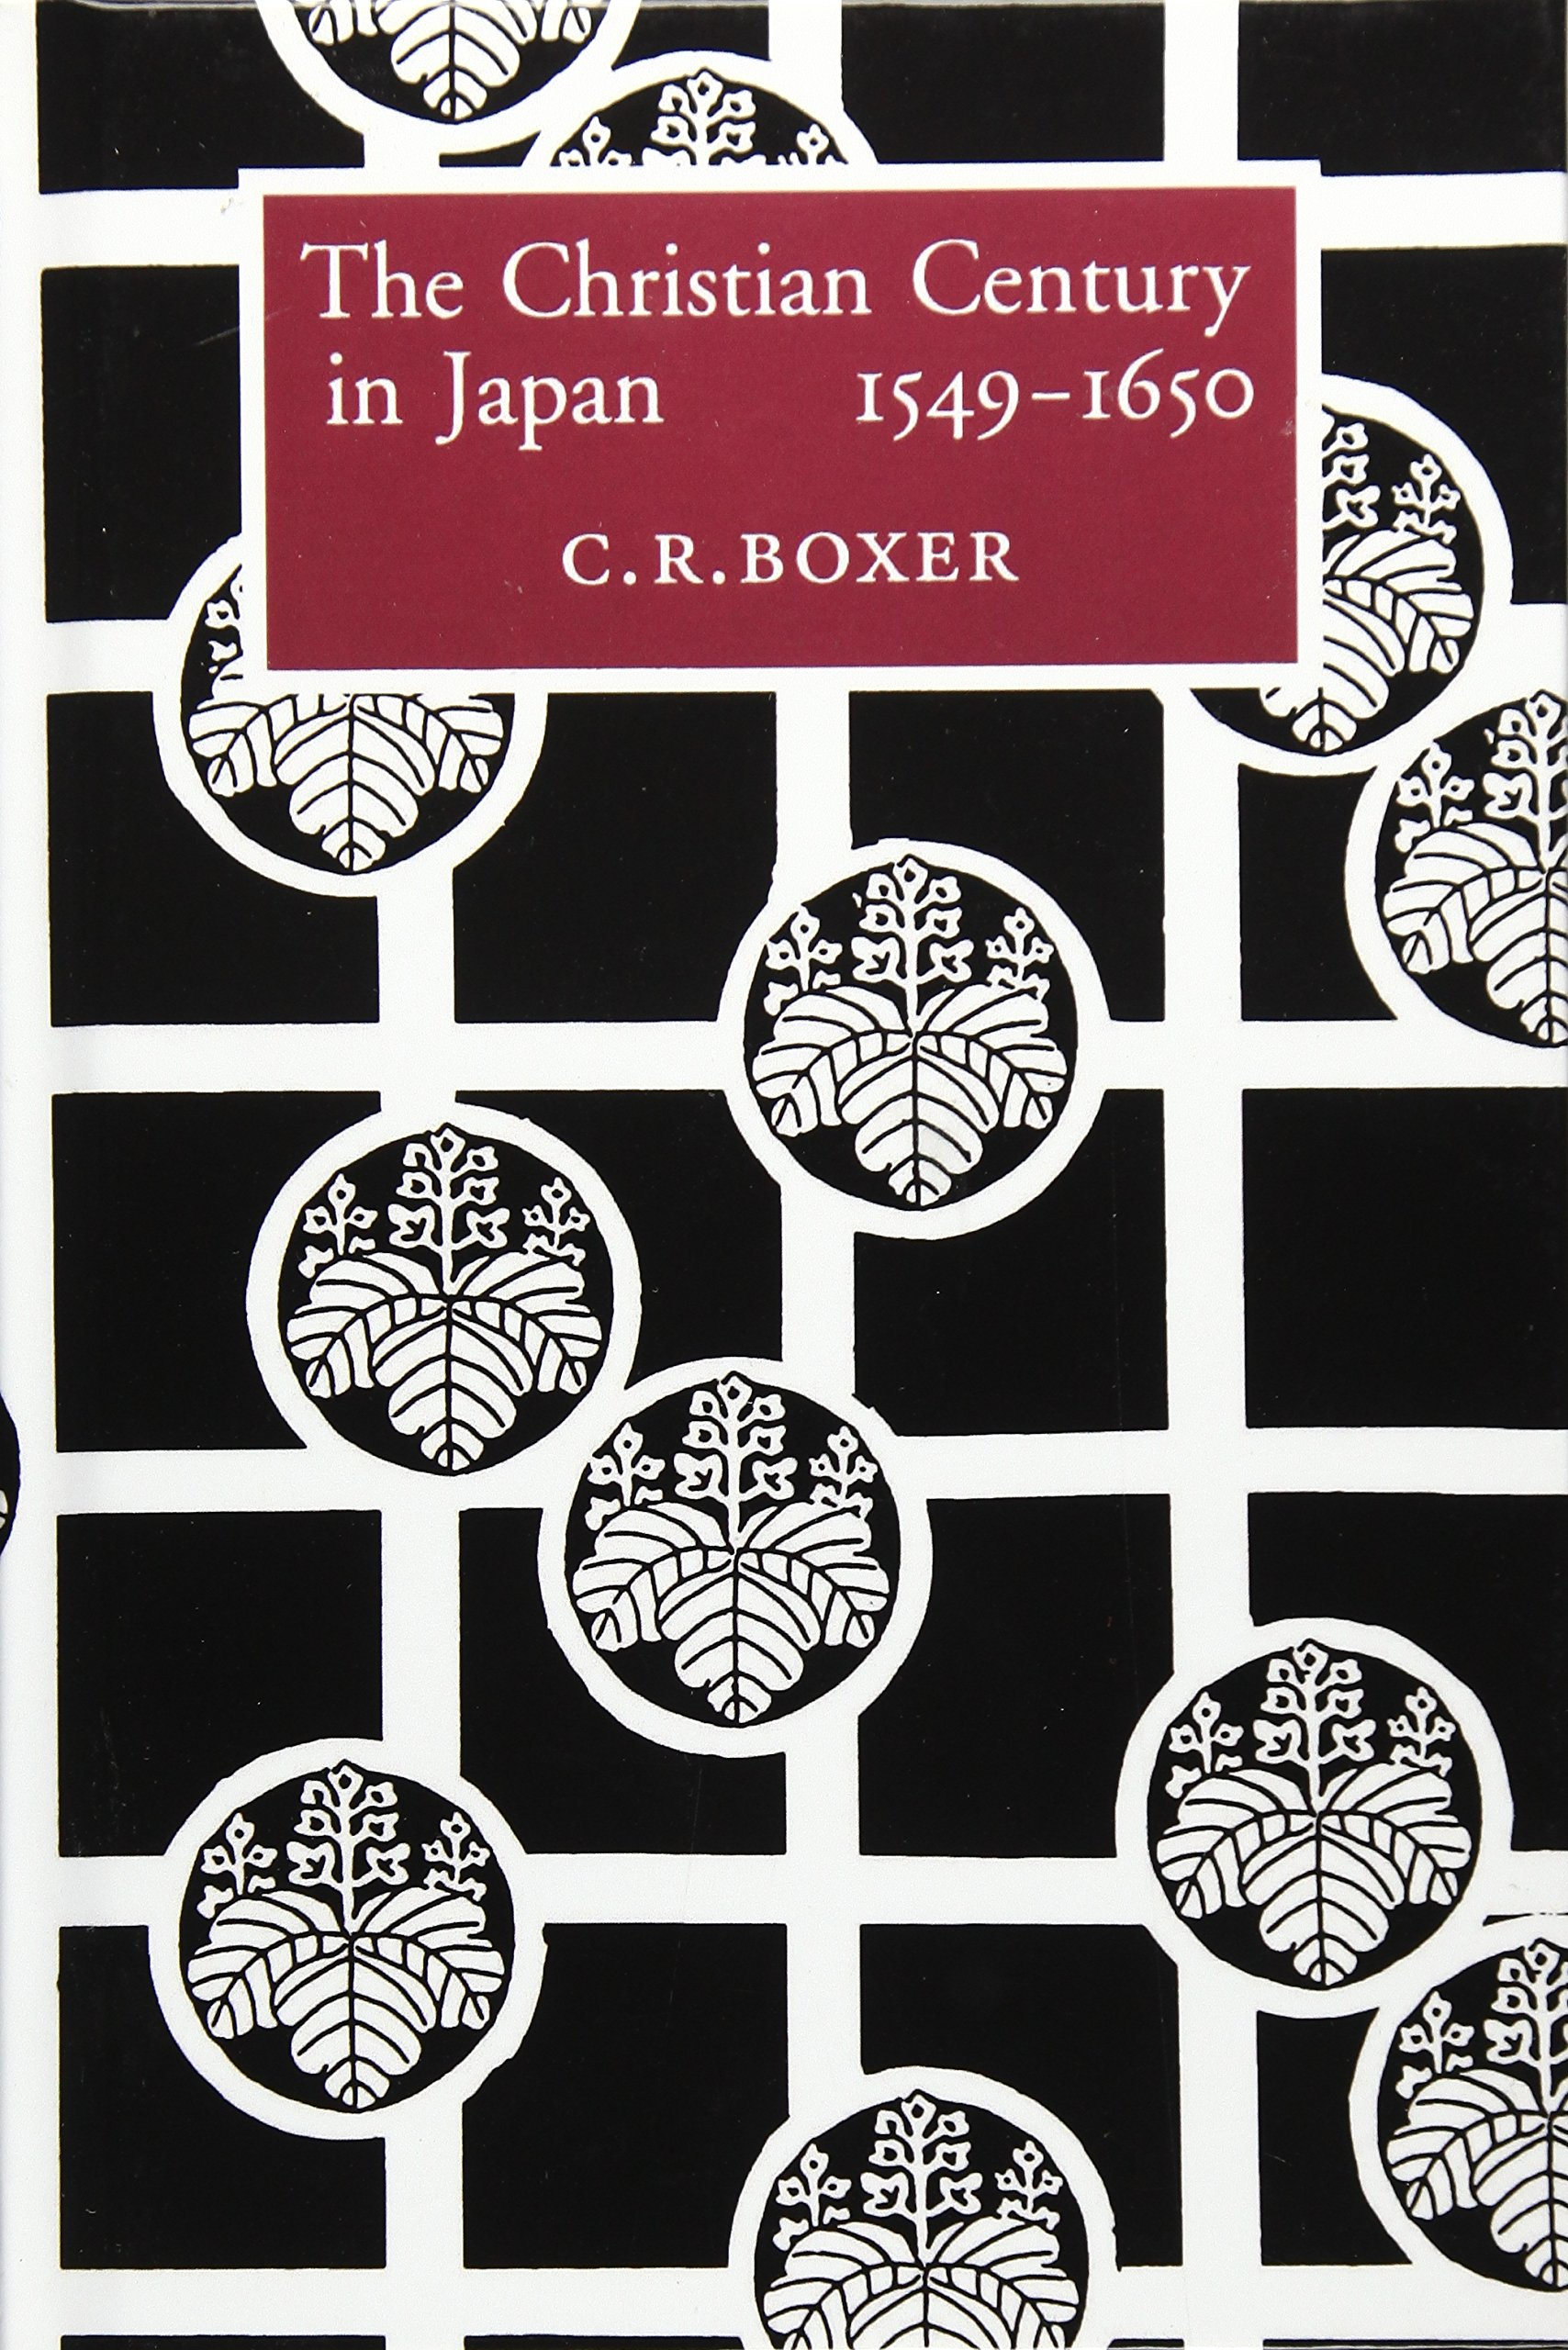 The Christian Century in Japan, 1549-1650: Professor C R Boxer:  9781857540352: Amazon.com: Books